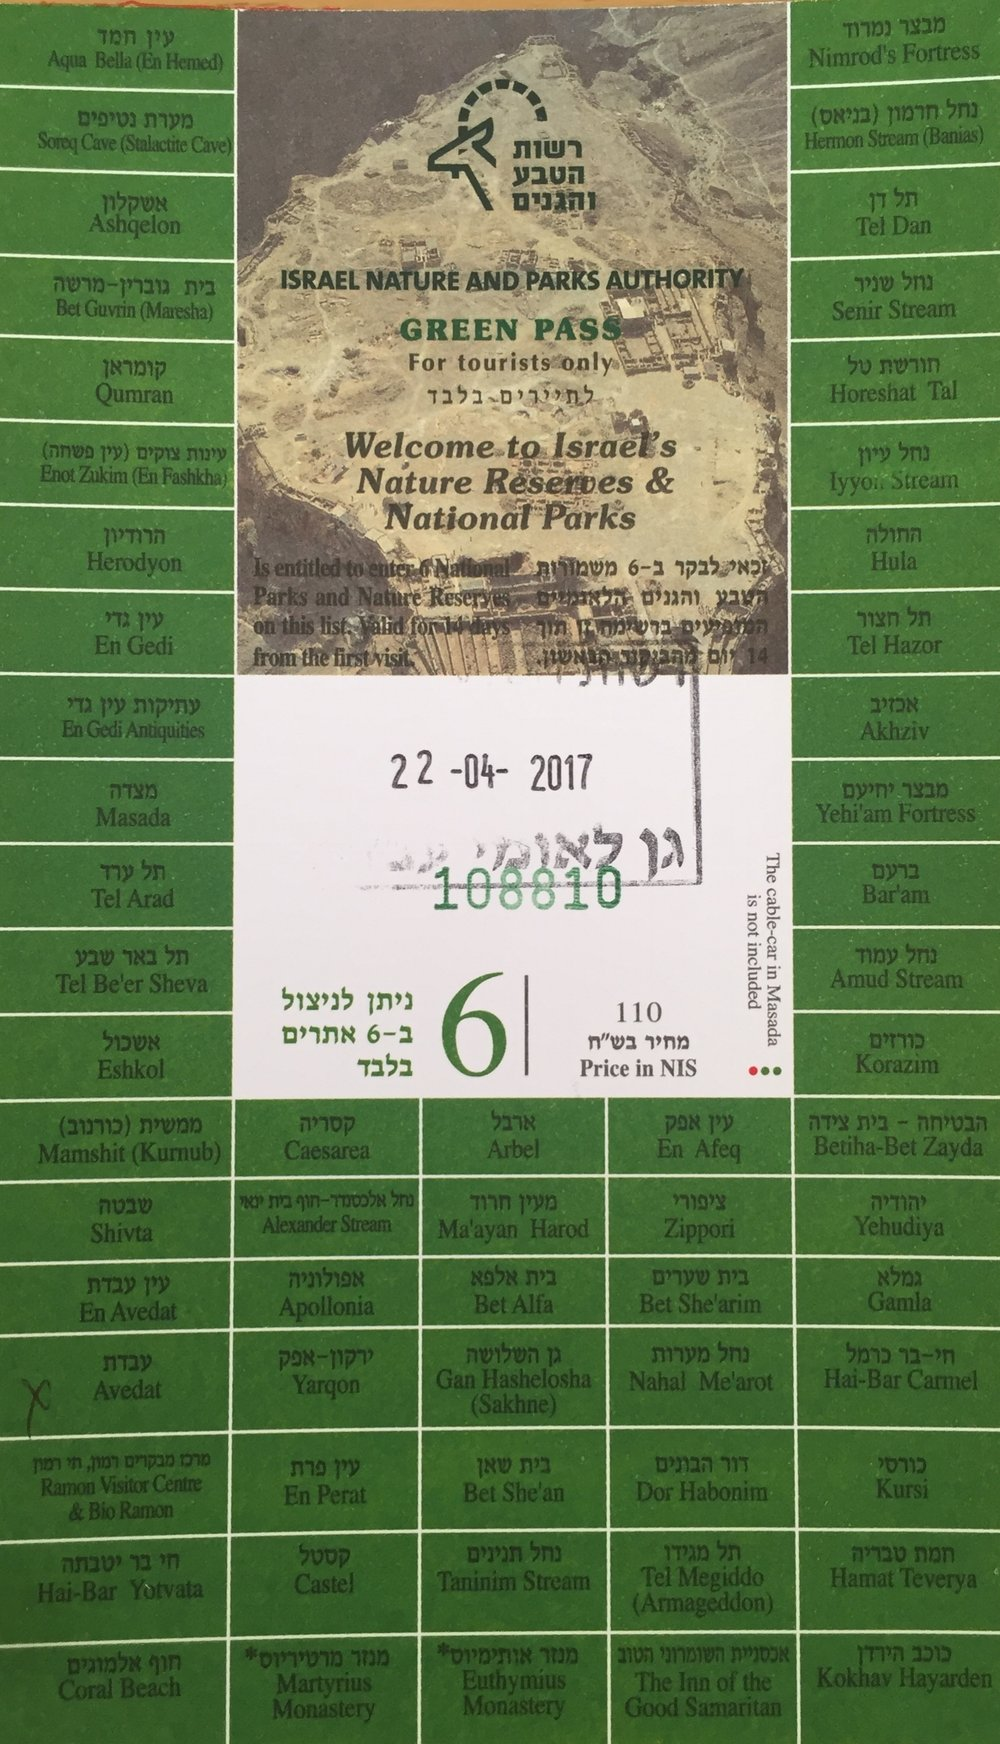 6 Israeli National Park Pass Purchased Post Masada